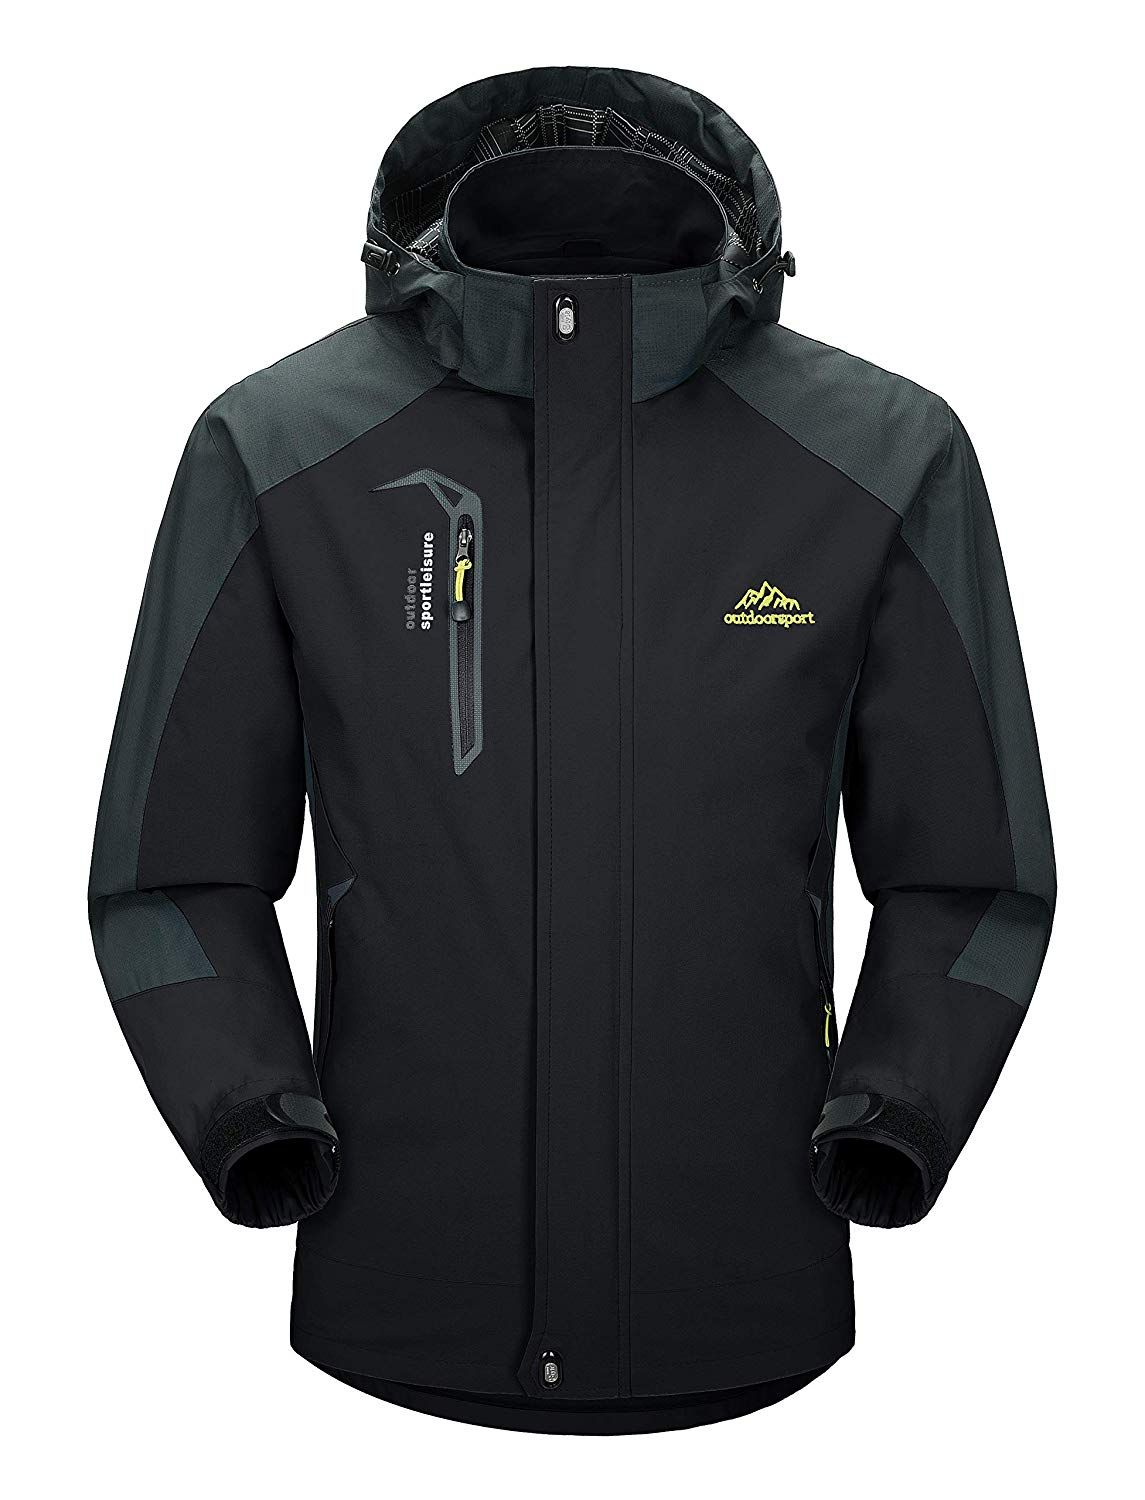 Pin It For Later Find Out More Snowboarding Jackets Magcomsen Men S Hooded Softshell Outdoor Windpro Winter Jacket Men Best Winter Jackets Windbreaker Jacket [ 1500 x 1145 Pixel ]